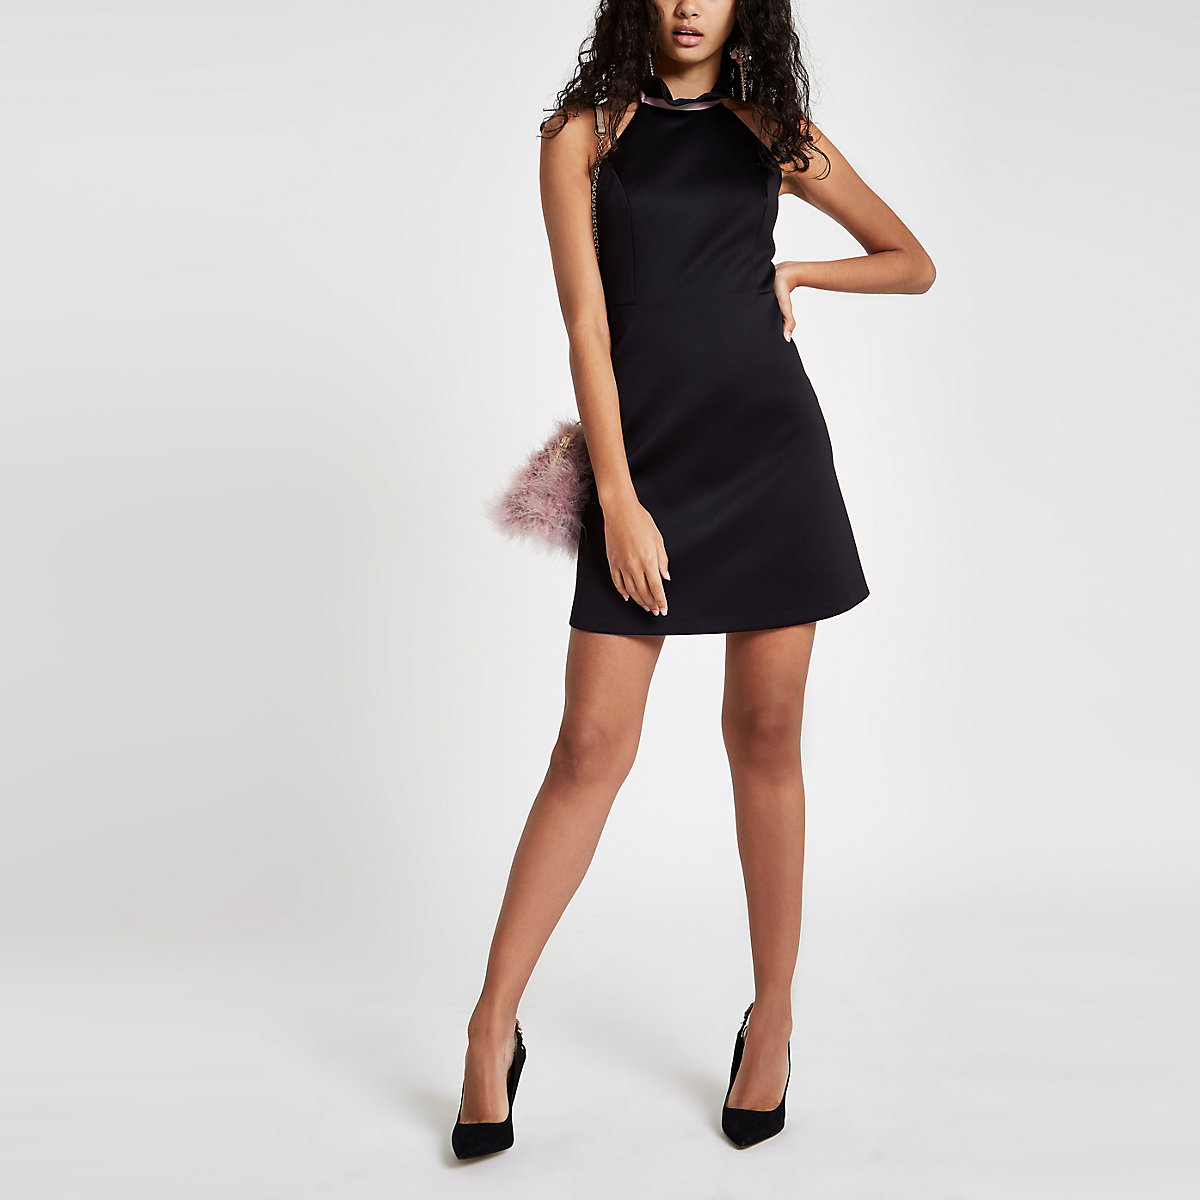 Black frill halter neck mini dress